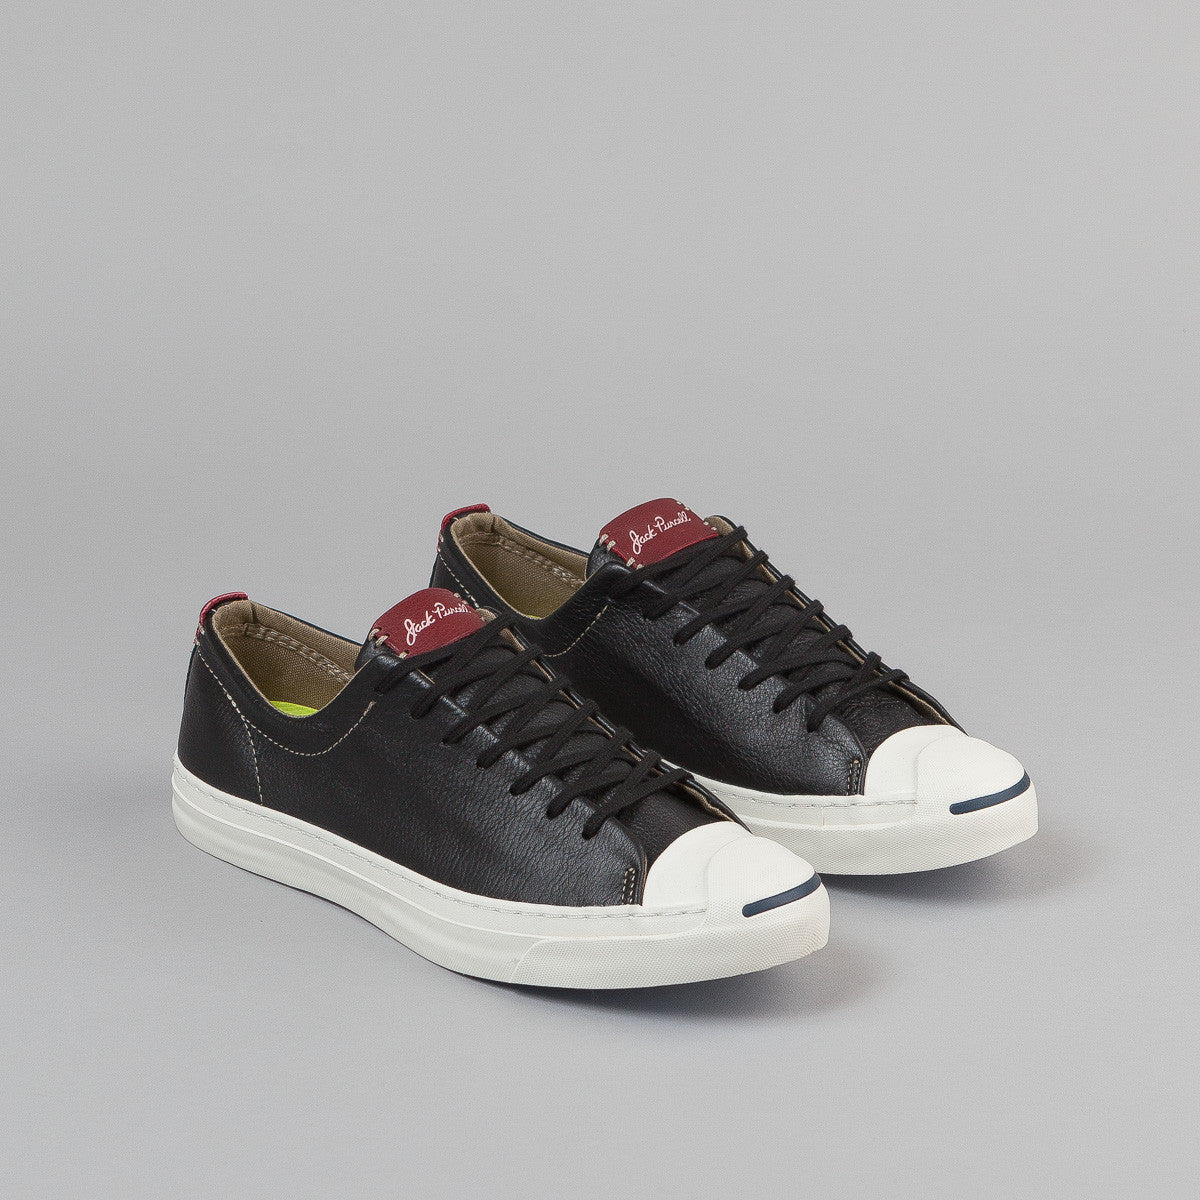 Converse JP Jack OX Shoes - Black / Egret / Back Alley Brick